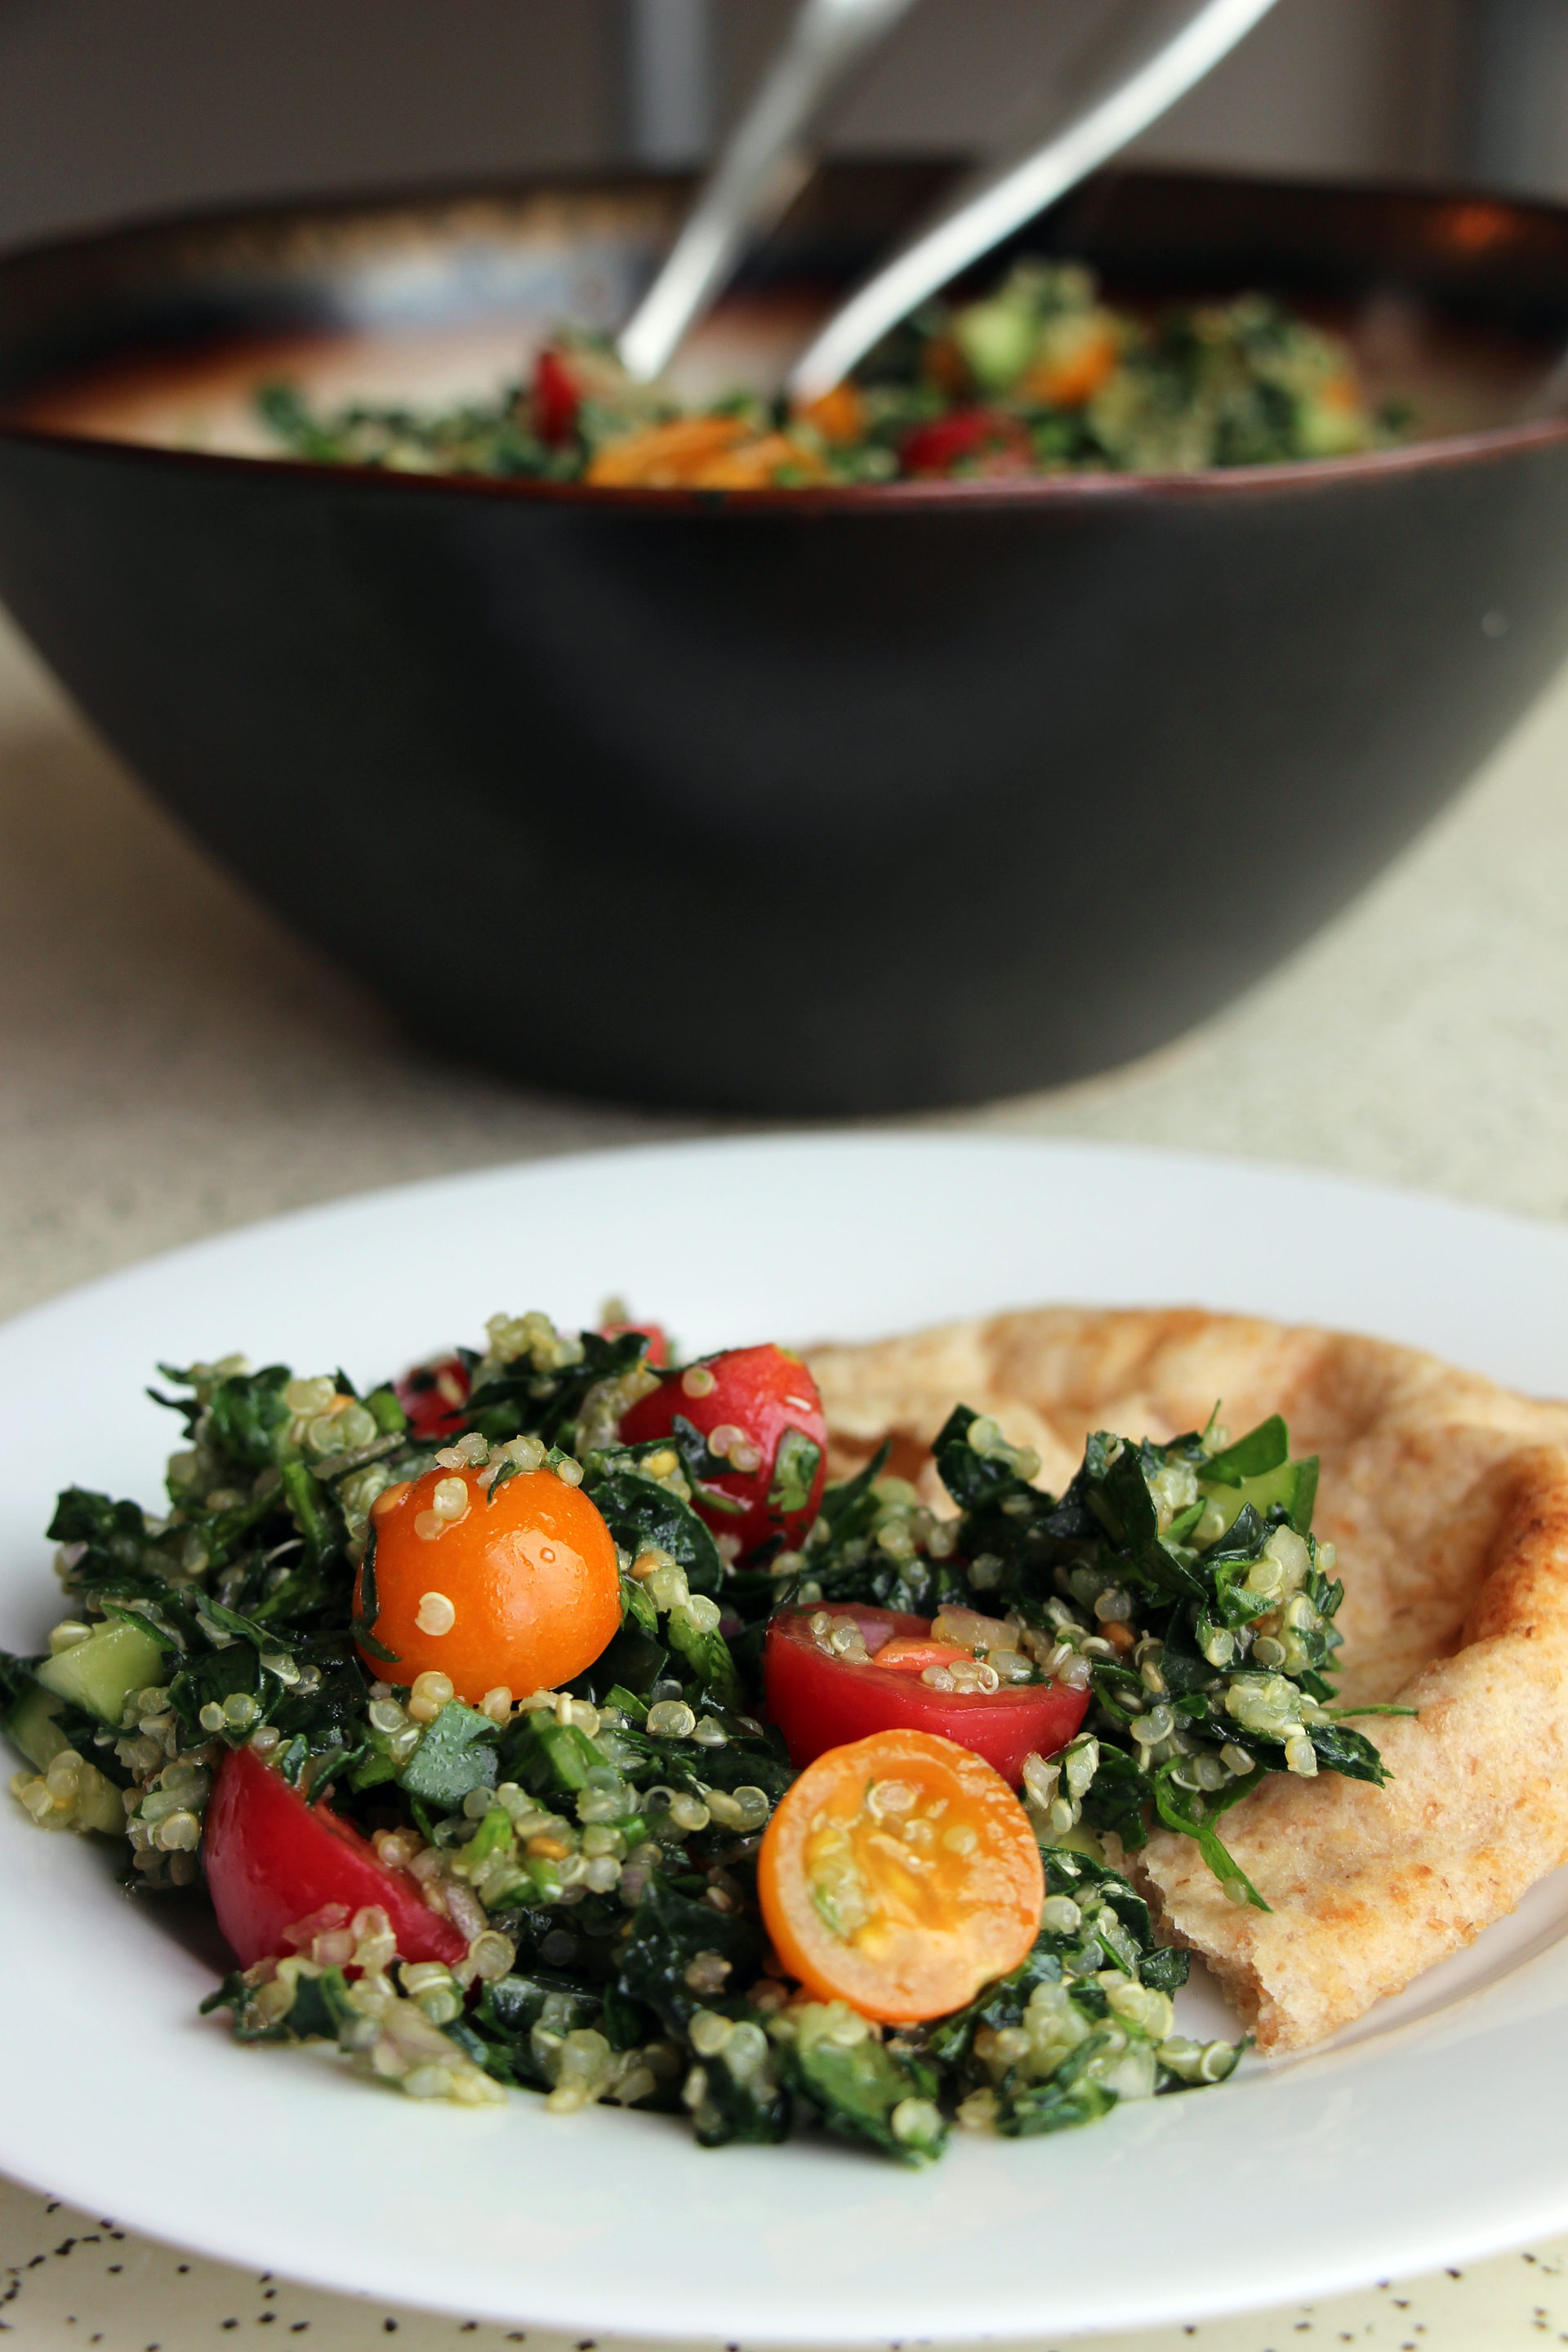 Mediterranean-Style Kale and Quinoa Tabouli with Cherry Tomatoes and Lemon with Pita Bread